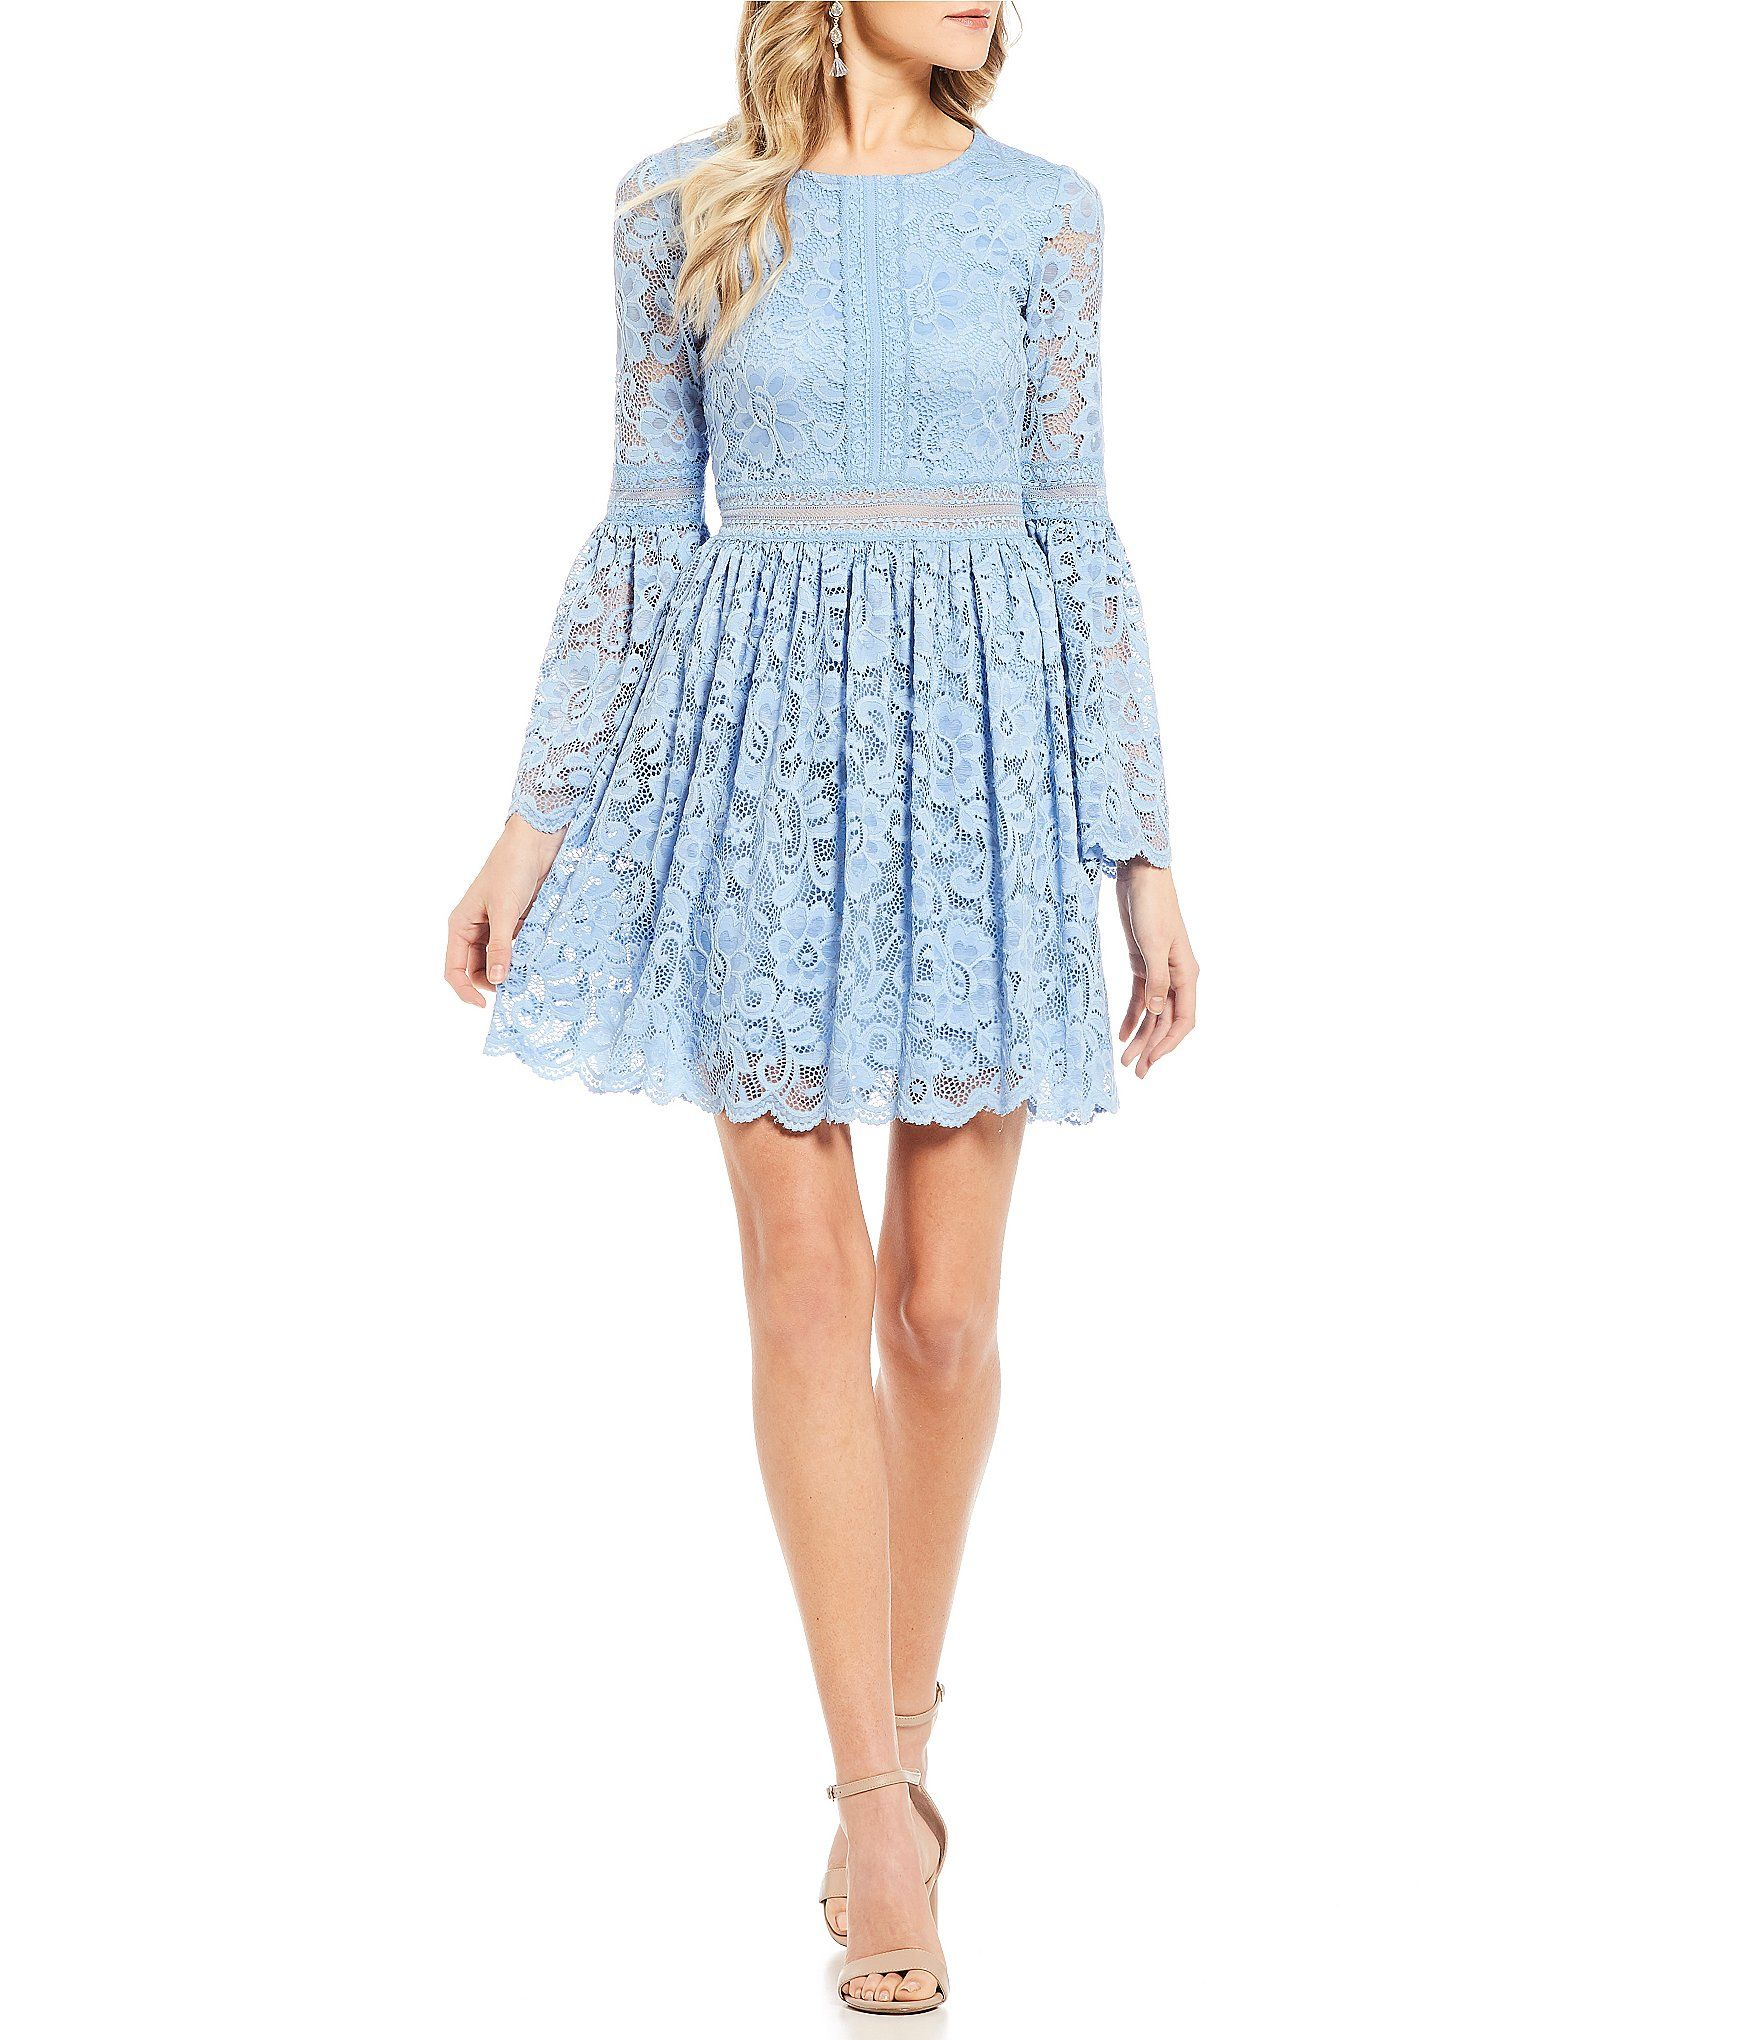 Sequin Hearts Bell Sleeve Lace Fitandflare Dress Dillards